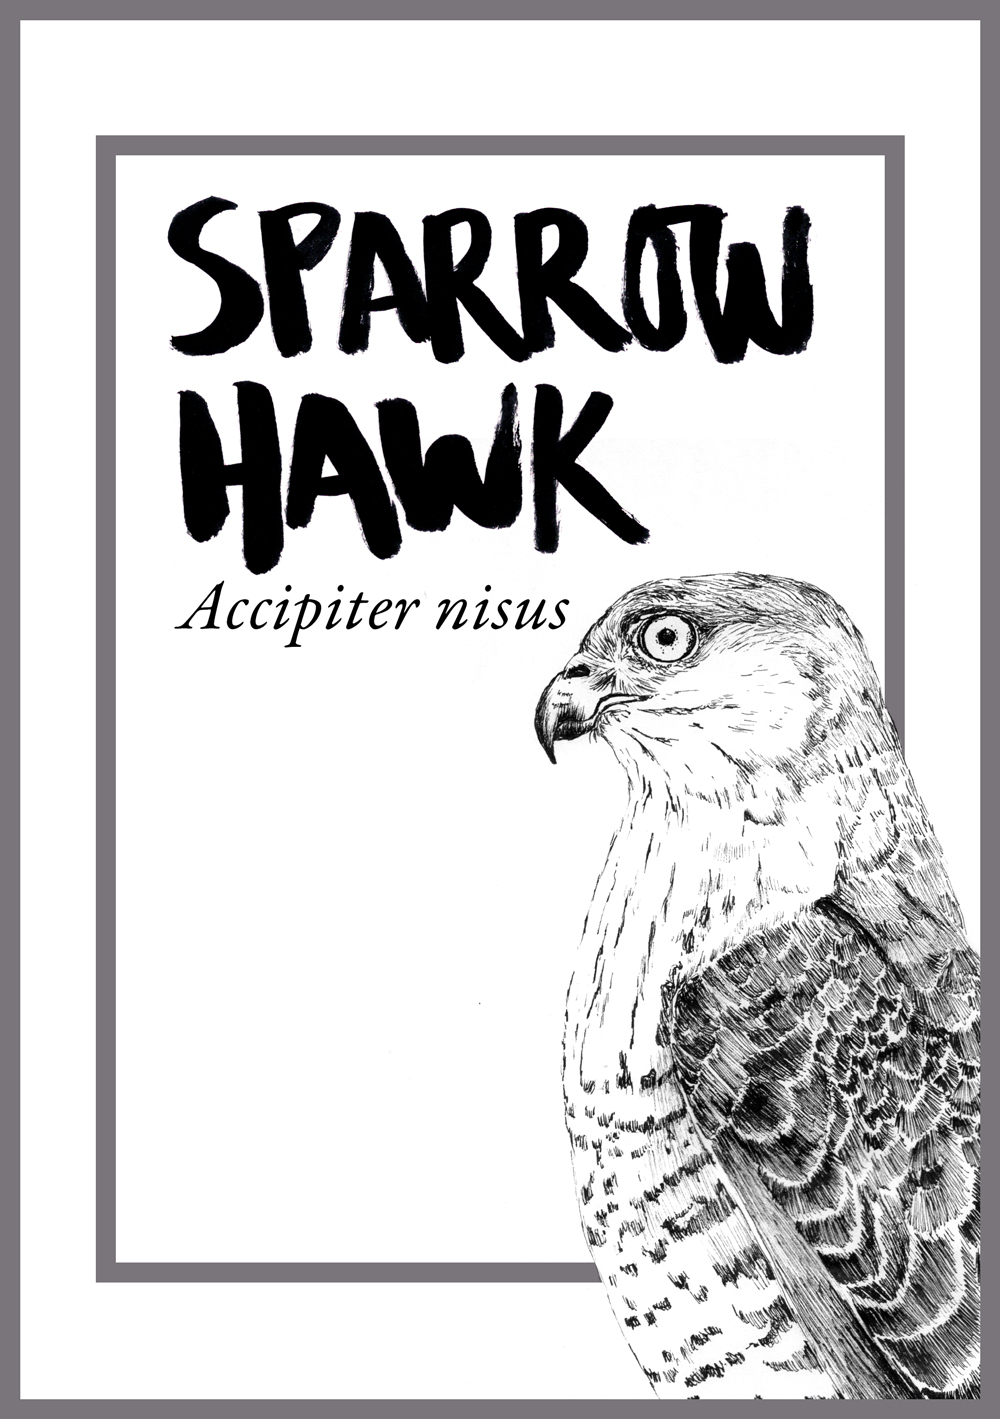 JC-CommissionsTableAnimals-sparrowhawk.jpg